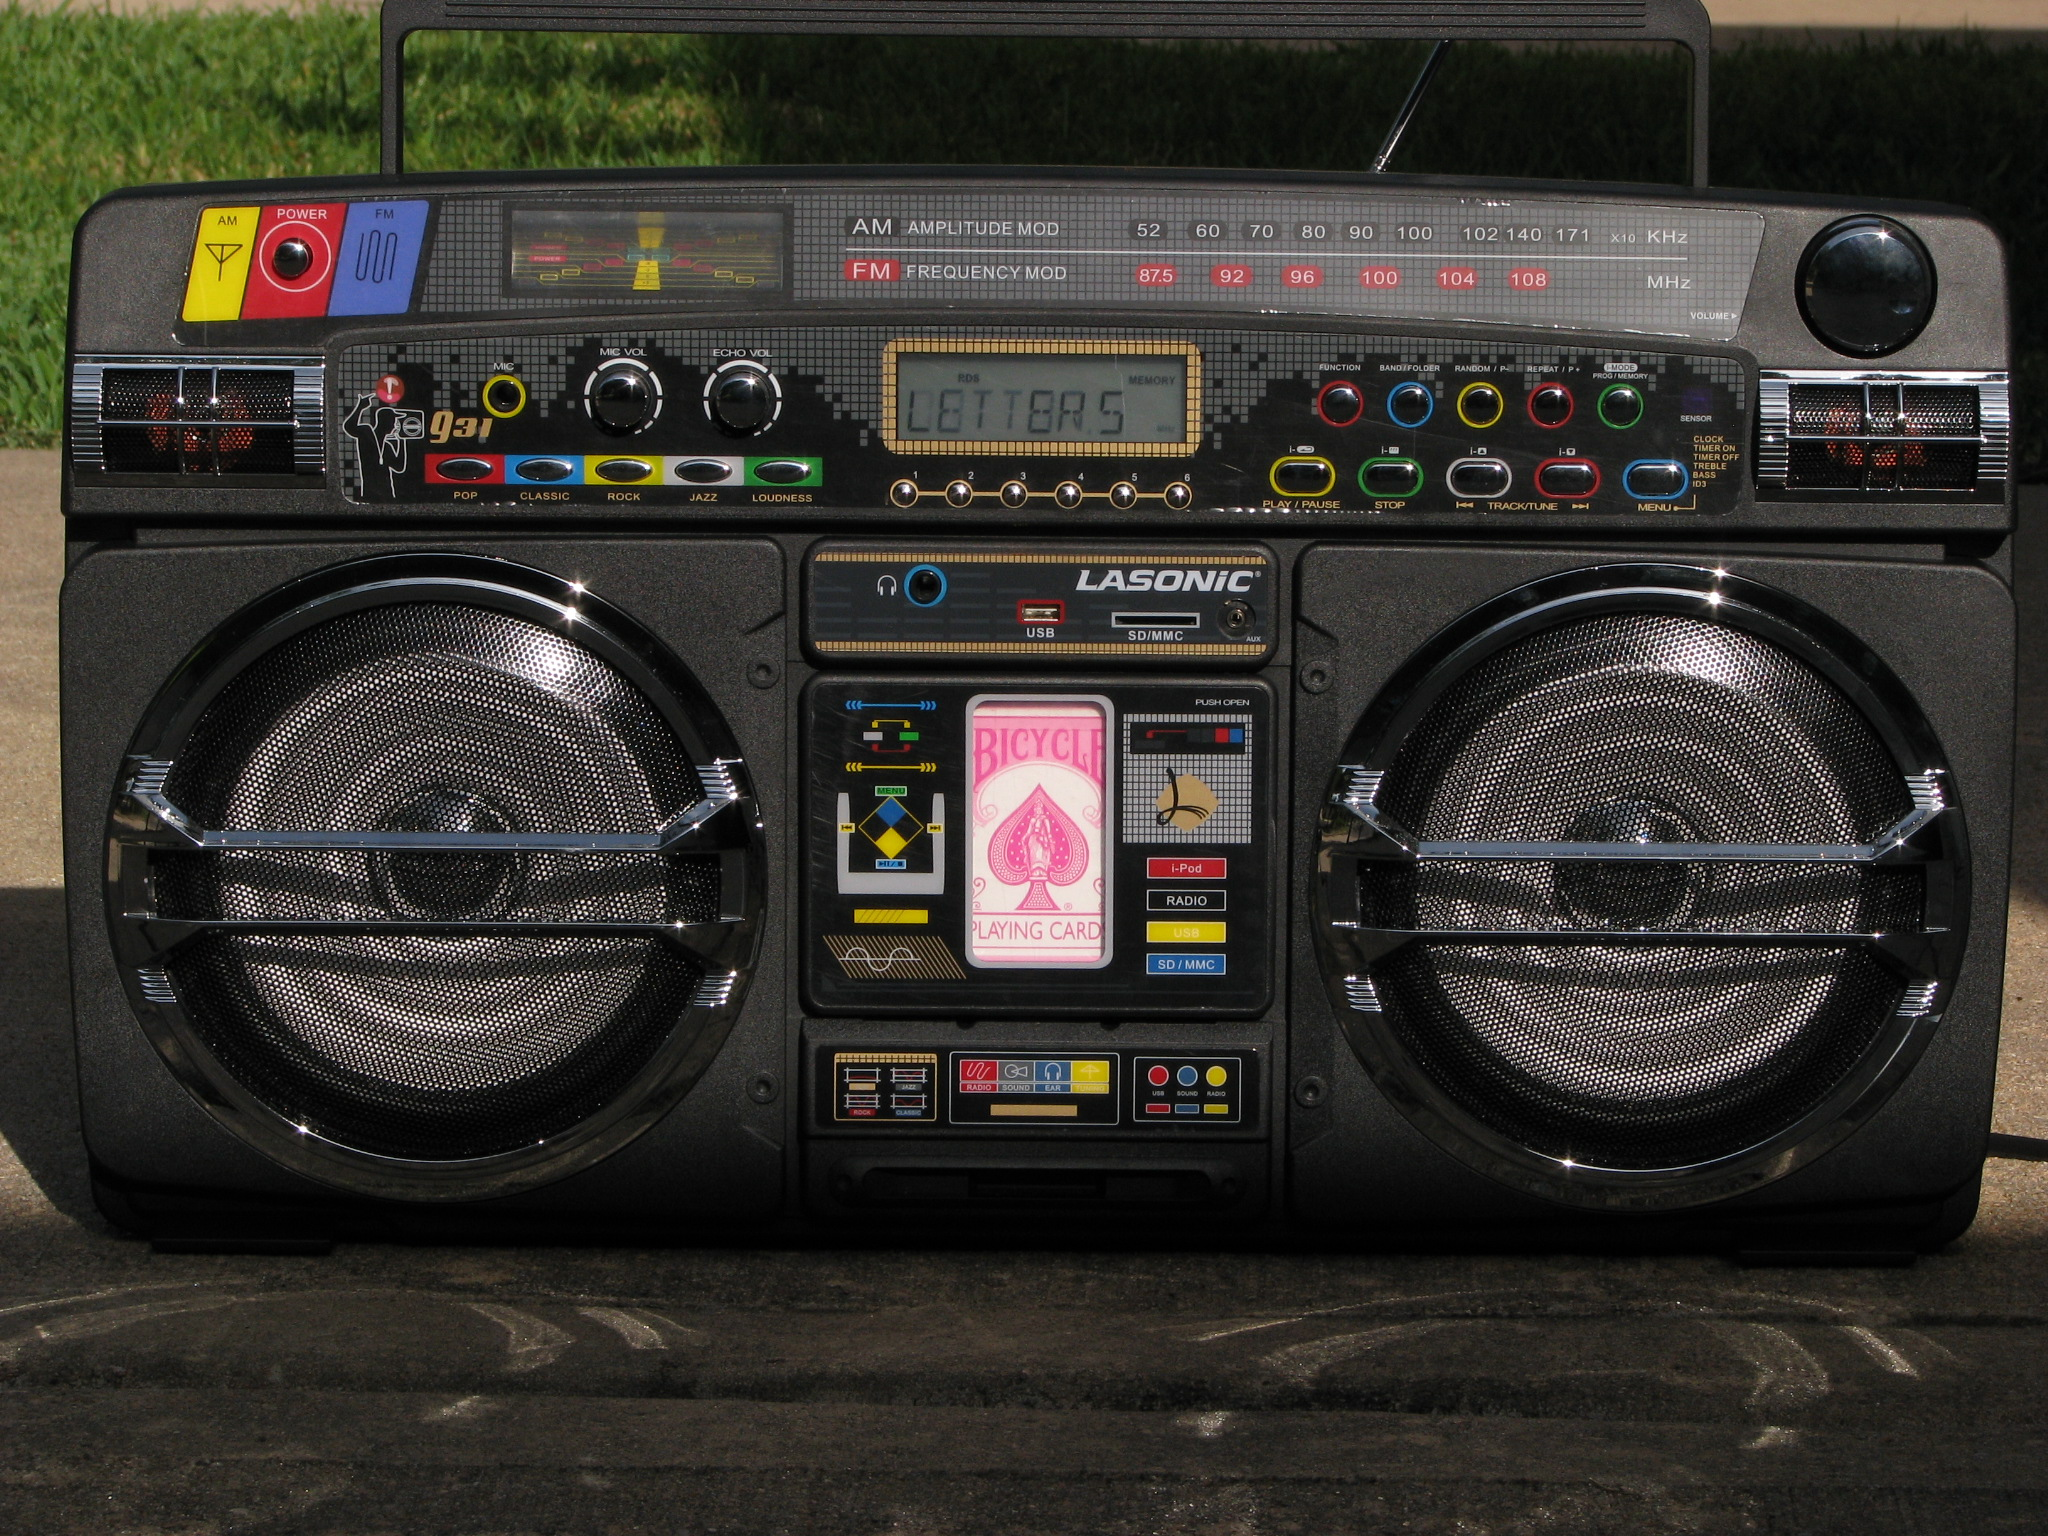 File lasonic i931 ipod ghetto wikimedia commons - Lasonic ghetto blaster i931x ...